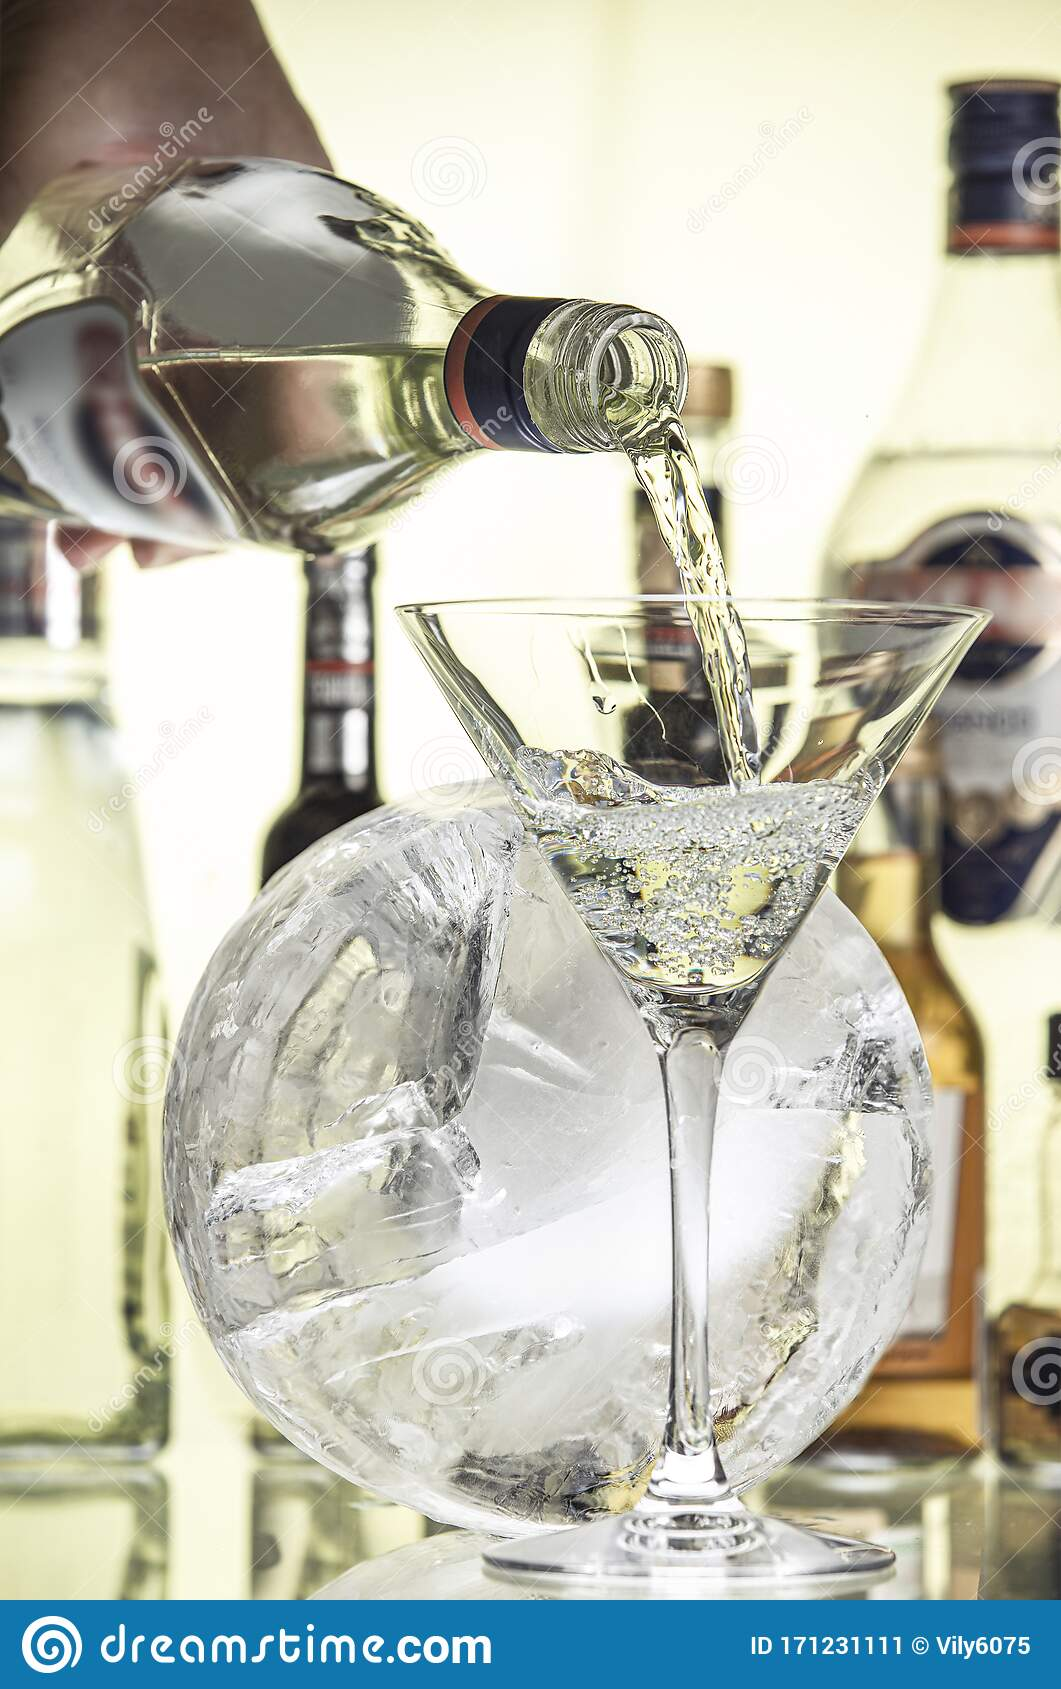 Round Block Of Ice And A Glass Of Dry Martini Stock Image Image Of Tall Pour 171231111